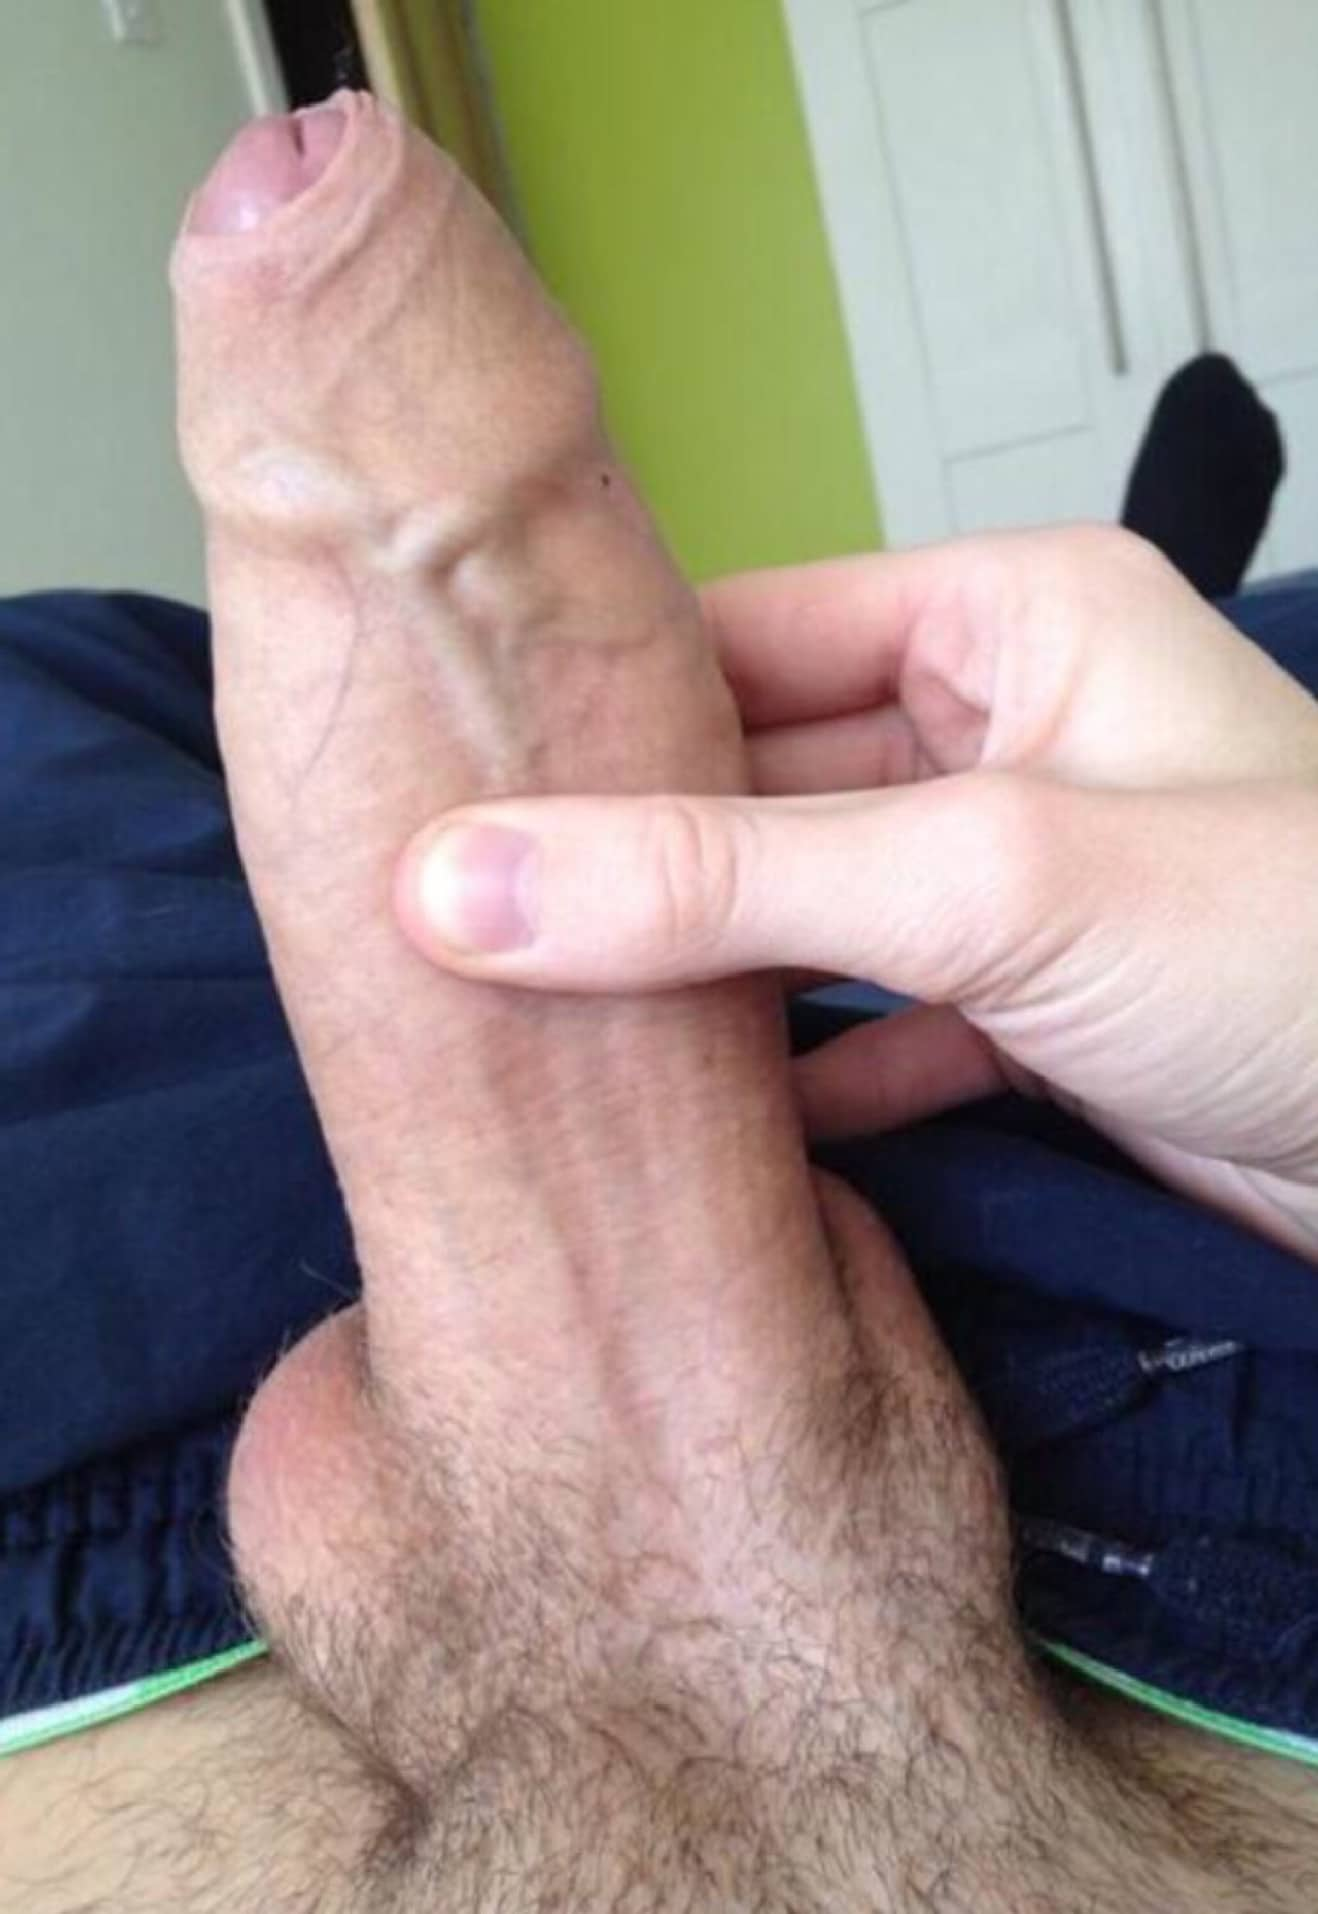 Dick uncut penis cock photo boy